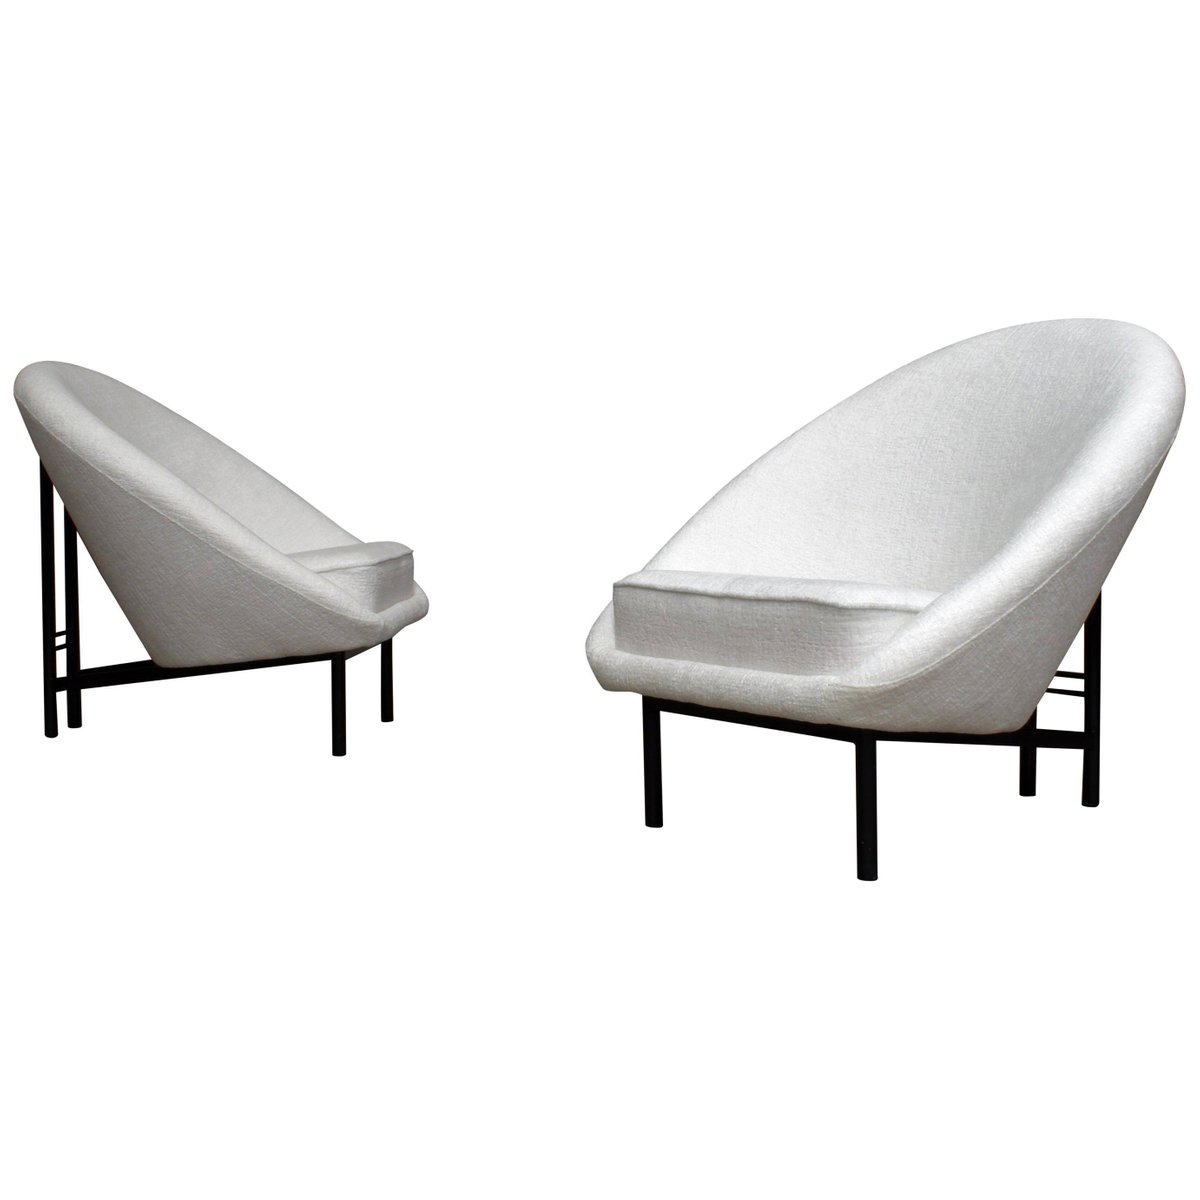 F815 Armchairs By Theo Ruth For Artifort The Netherlands 1958 Set Of 2 For Sale At Pamono